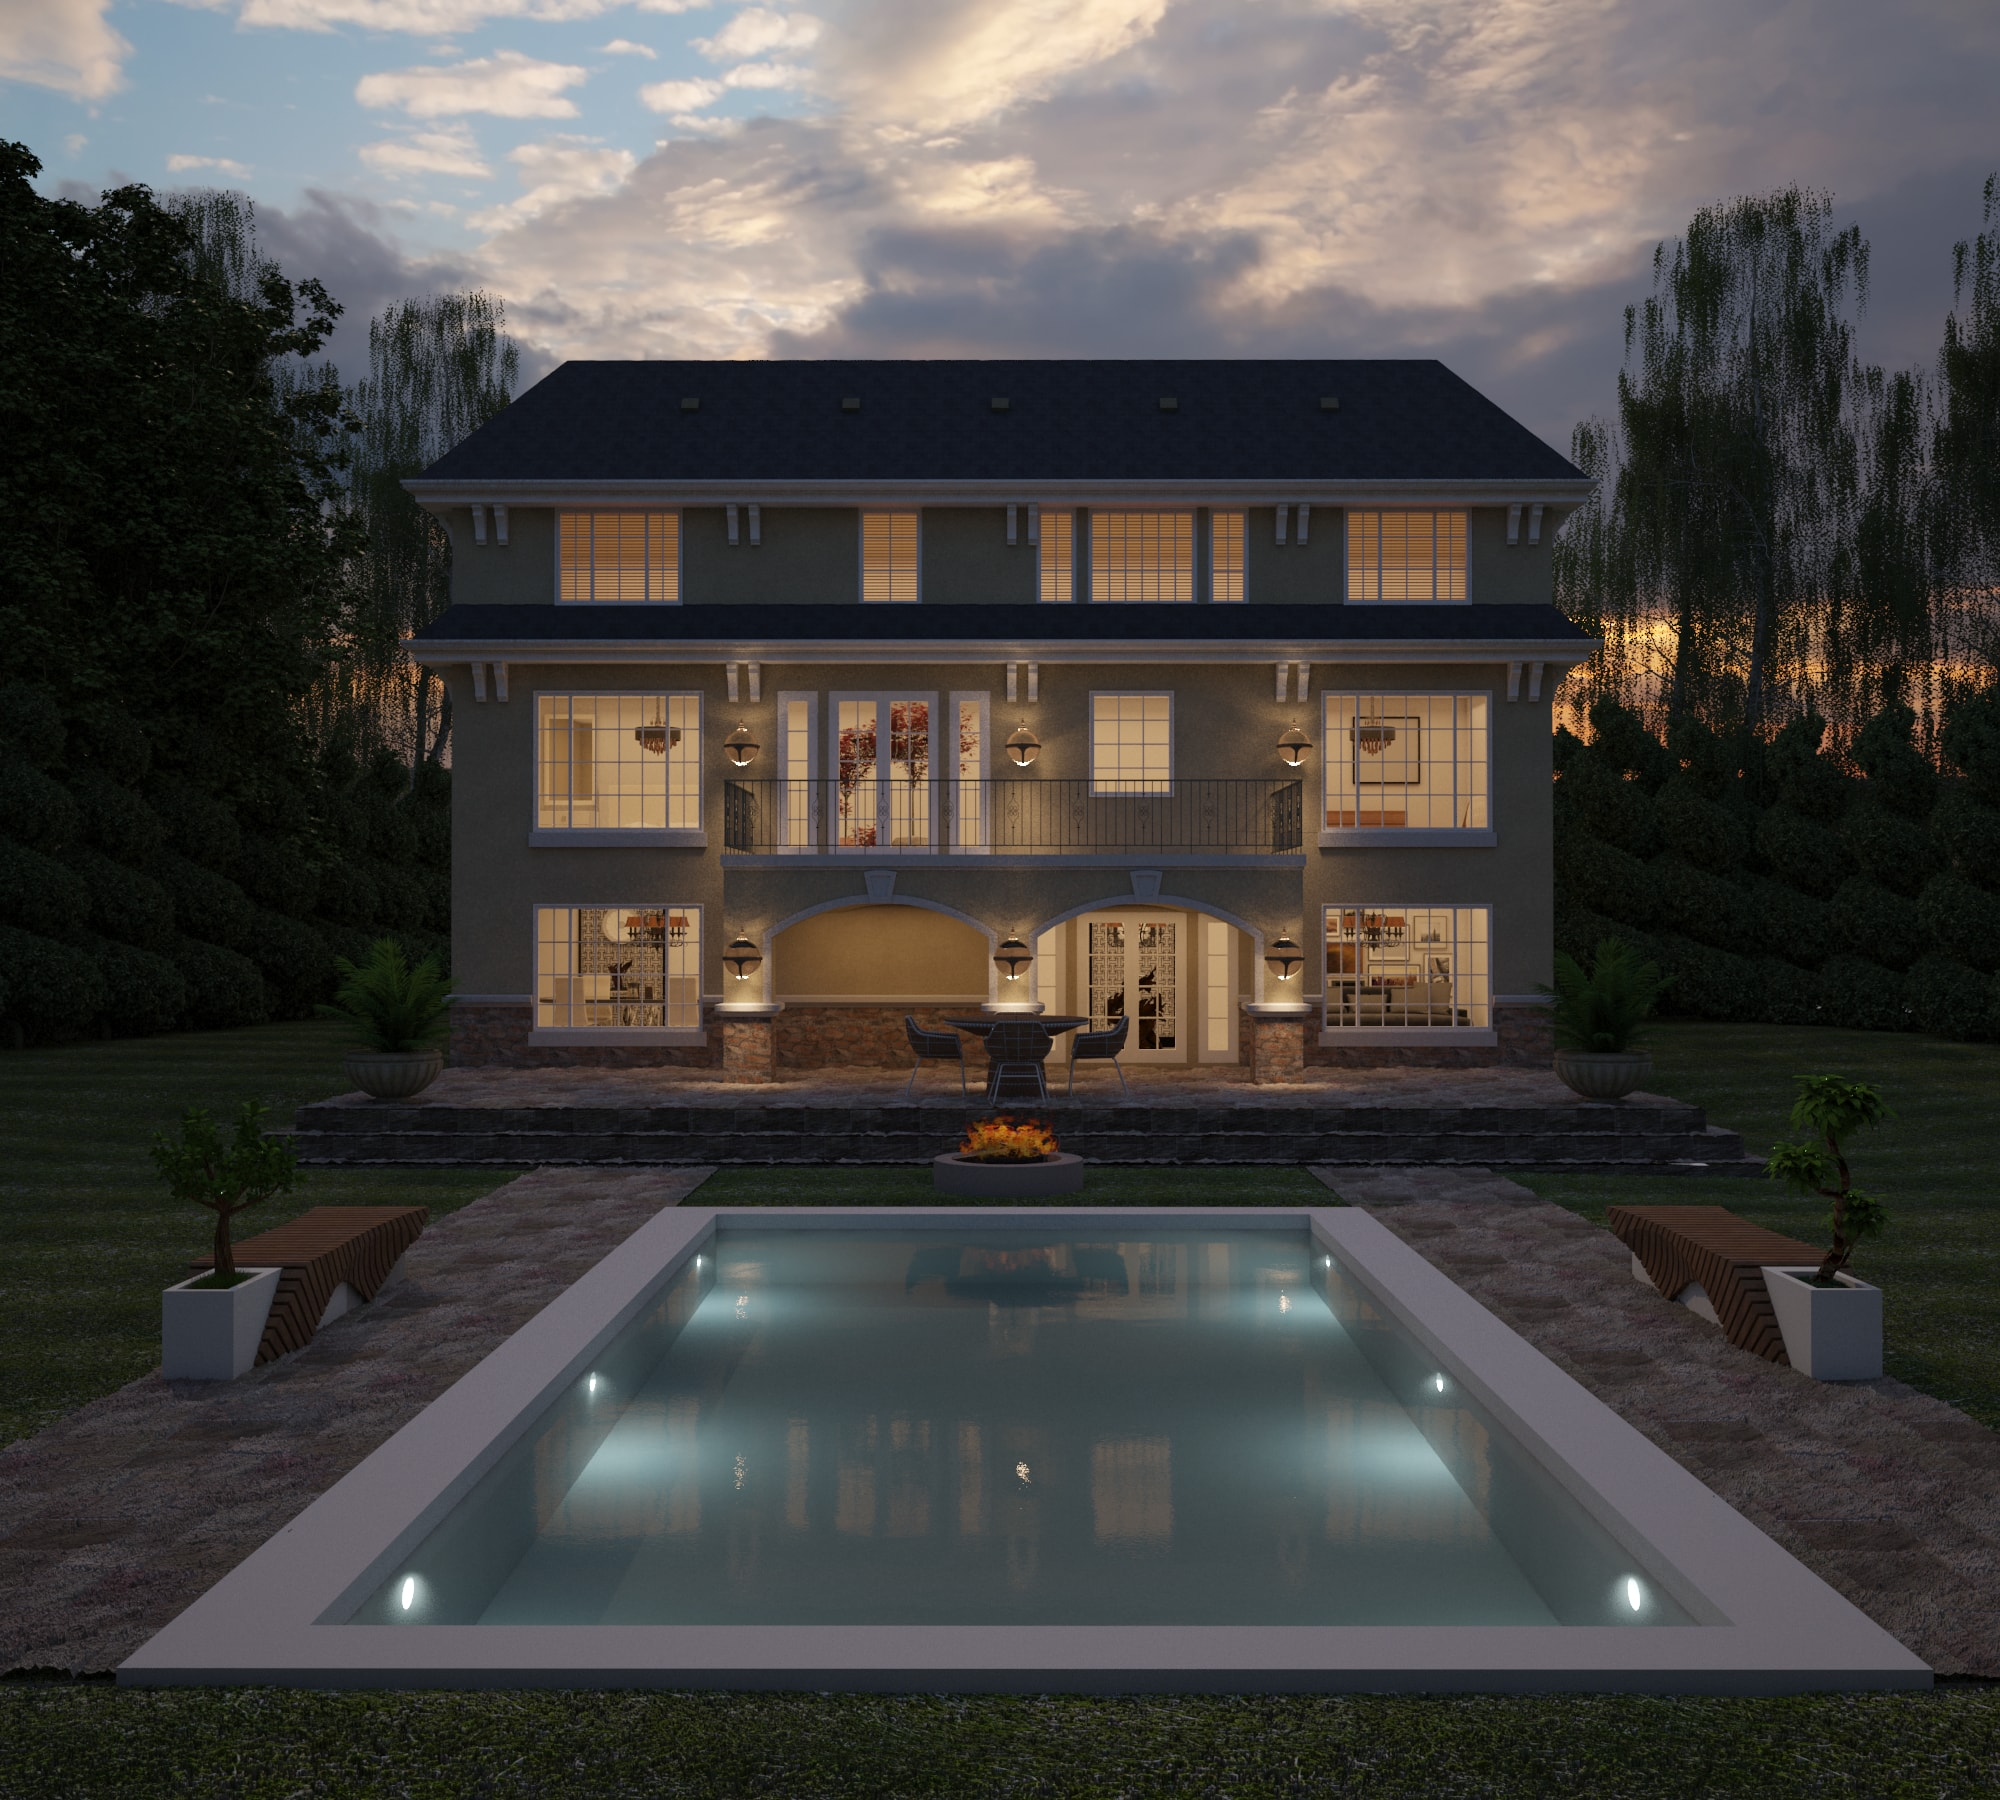 Renders - Three Storey House - Back View - AutoCAD - Render - 3D Visualization